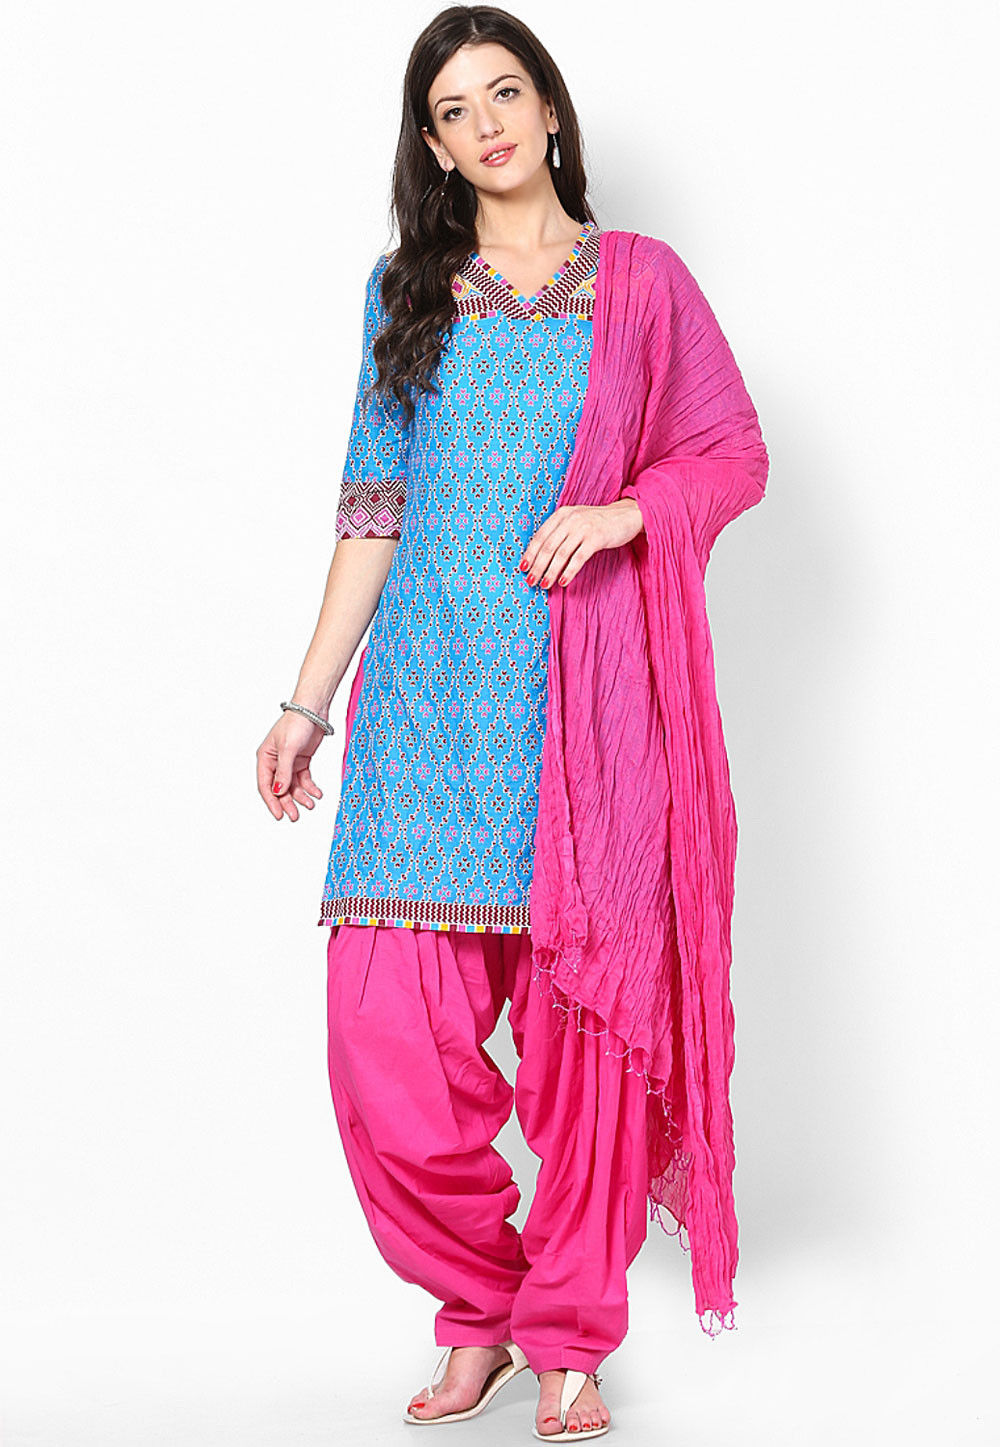 Cotton Patiala with Dupatta in Fuchsia